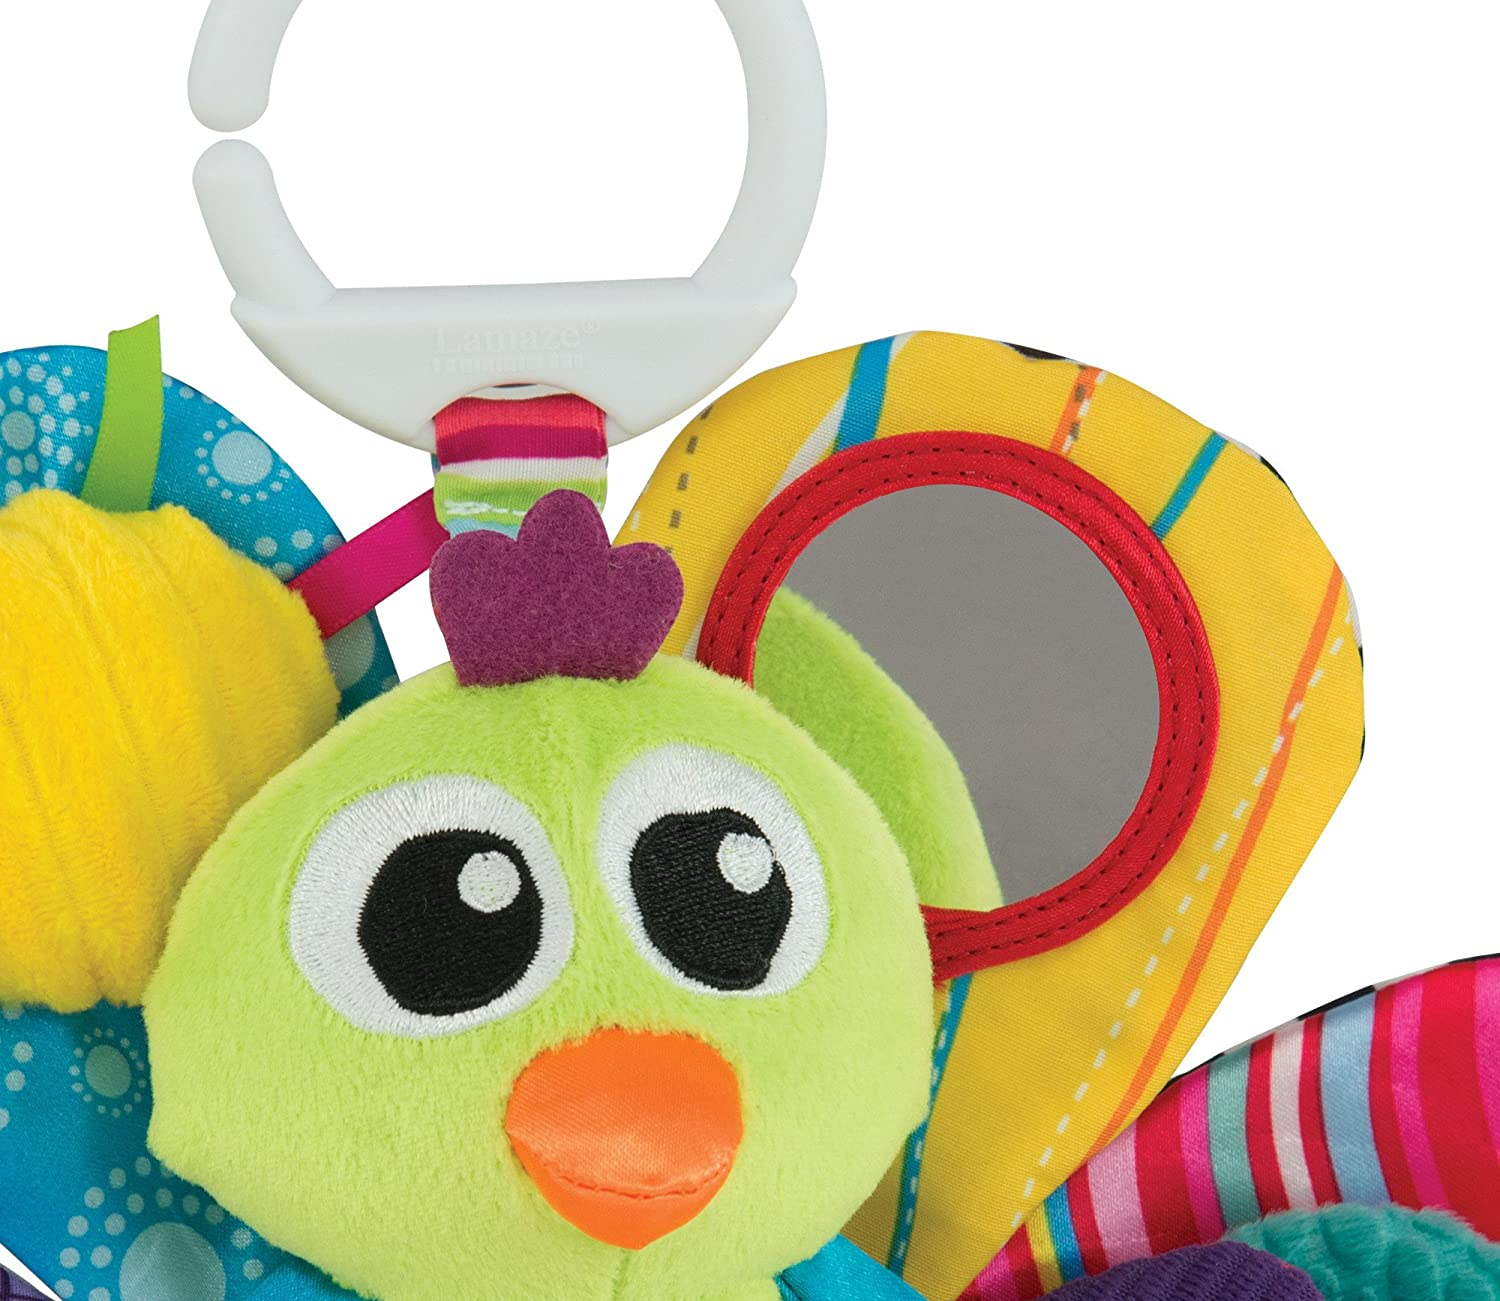 LC27013 Lamaze Jacques the Peacock Play /& Go Pram Toy Baby Infant Age 0 Months+